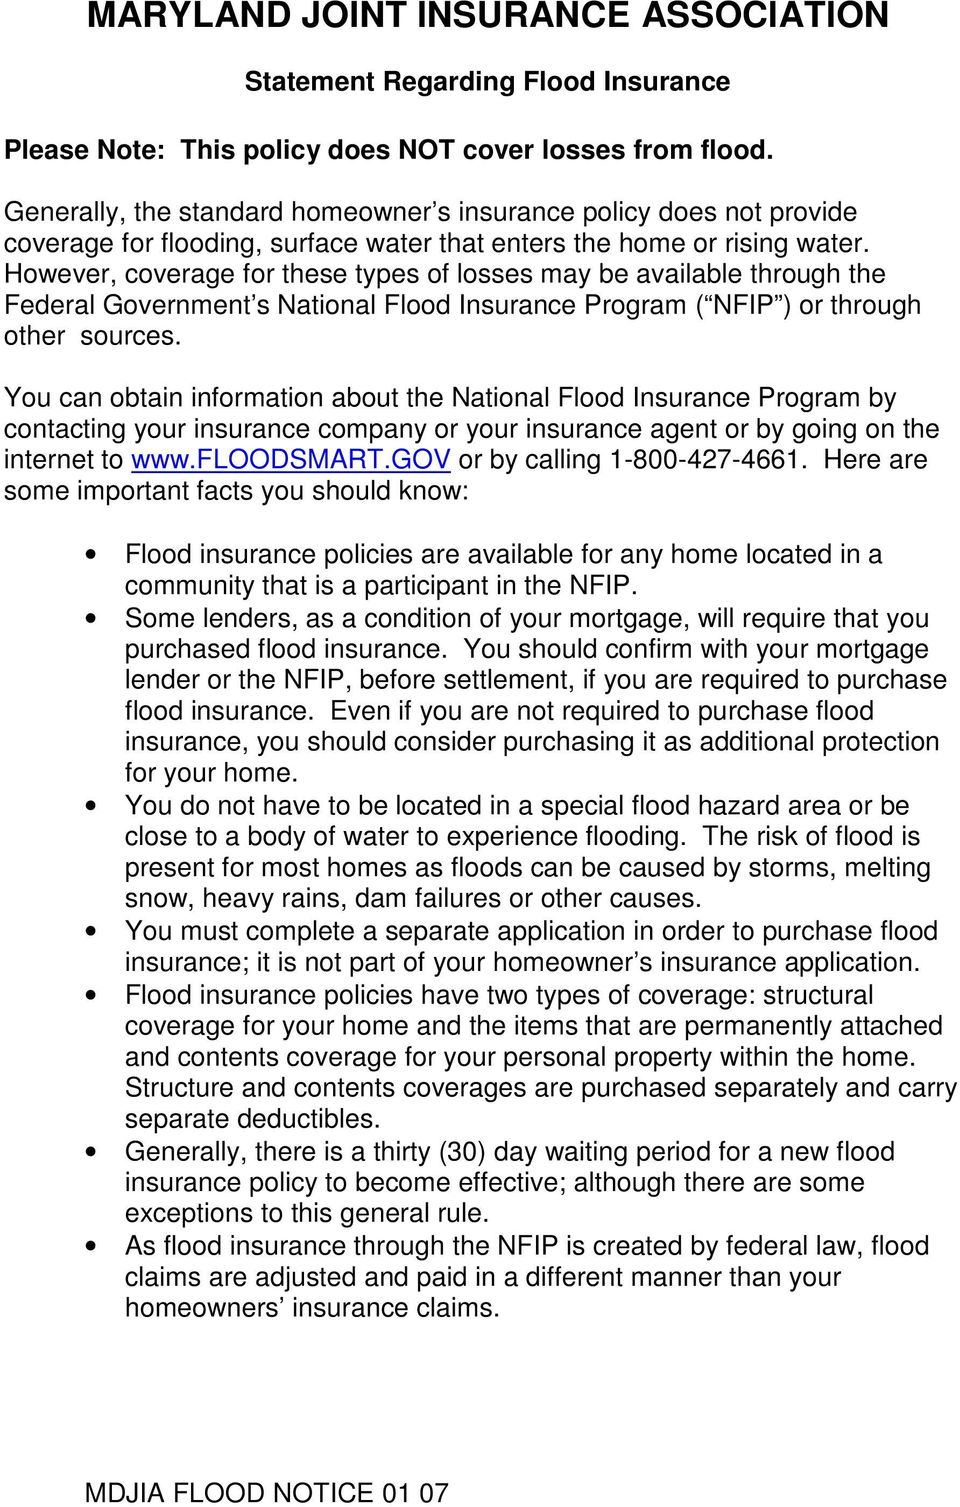 However, coverage for these types of losses may be available through the Federal Government s National Flood Insurance Program ( NFIP ) or through other sources.